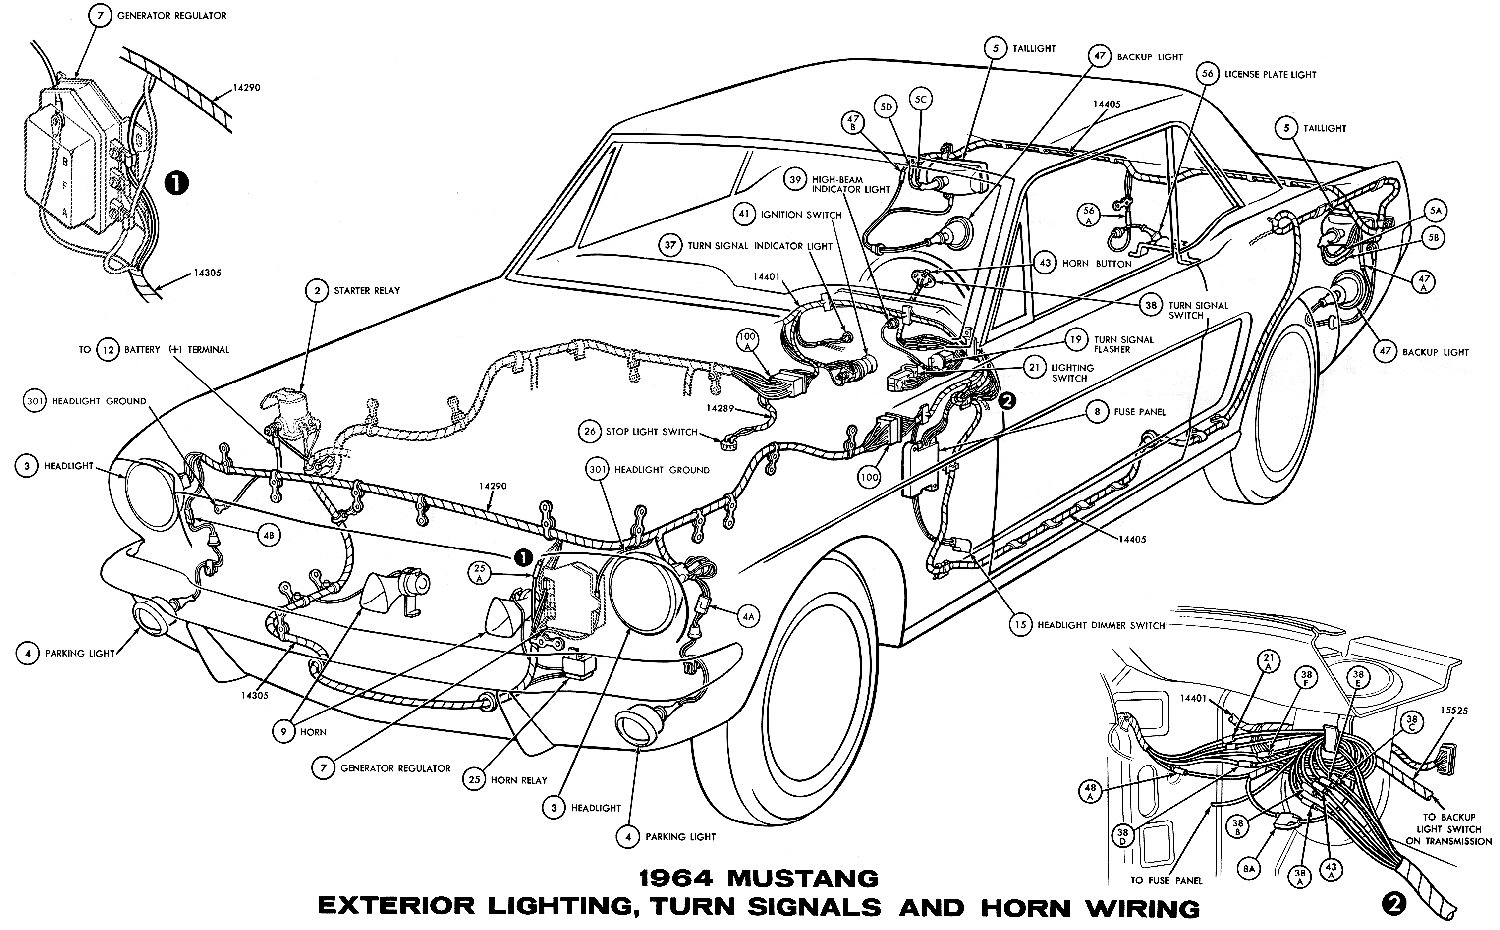 1964h 1964 mustang wiring diagrams average joe restoration 1968 mustang tail light wiring diagram at bakdesigns.co